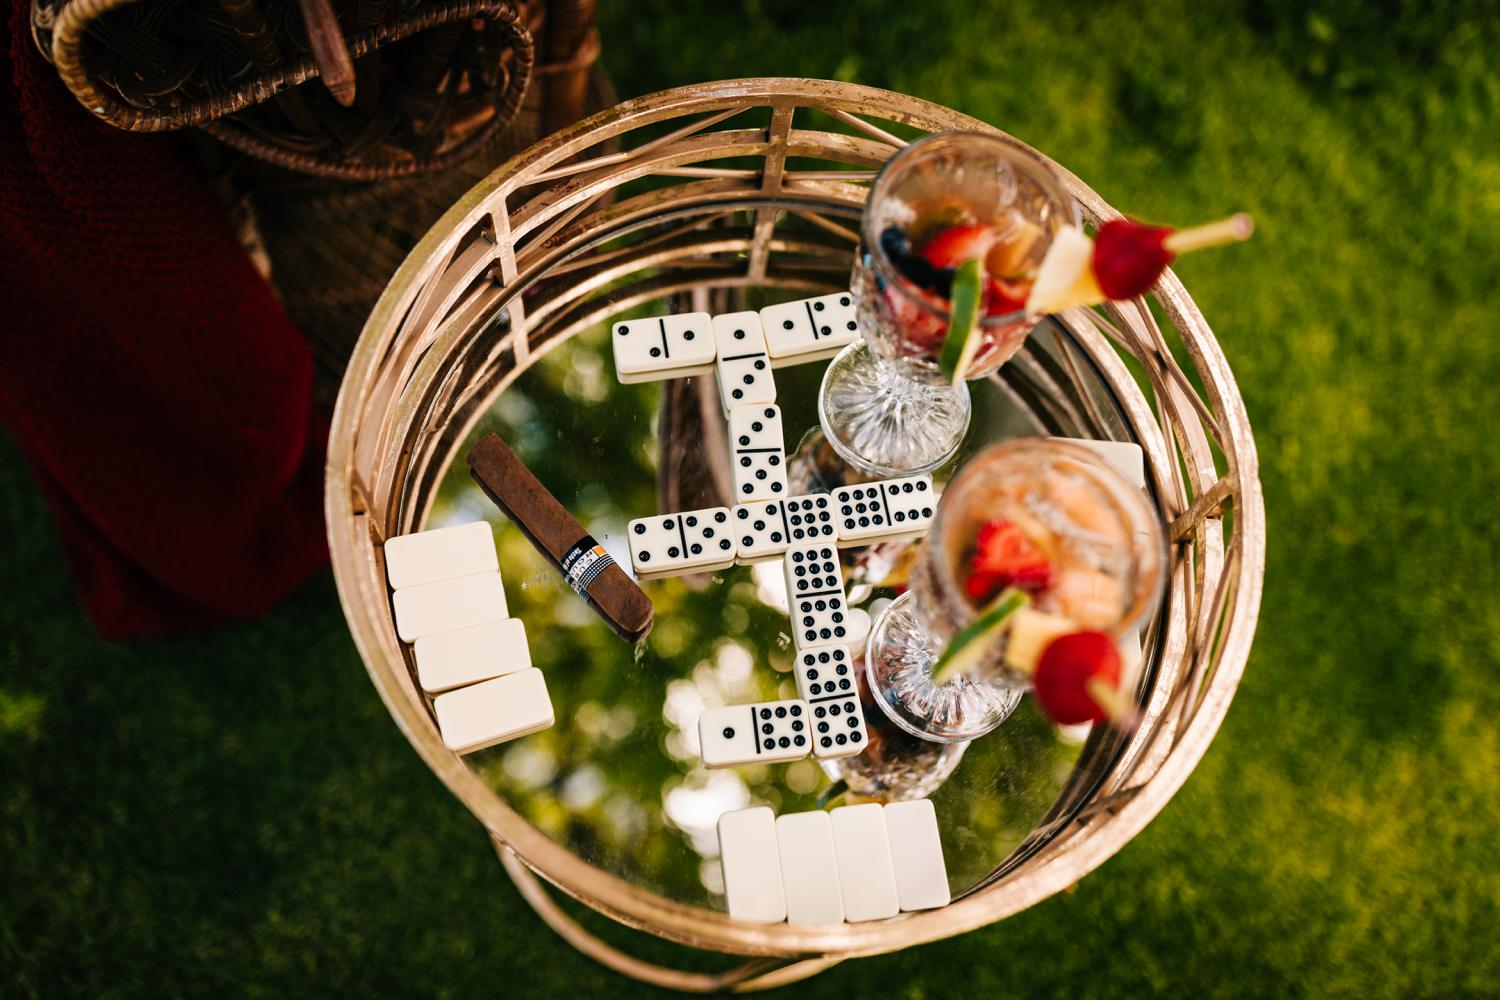 Cuban themed Albuquerque wedding with dominos and fruit